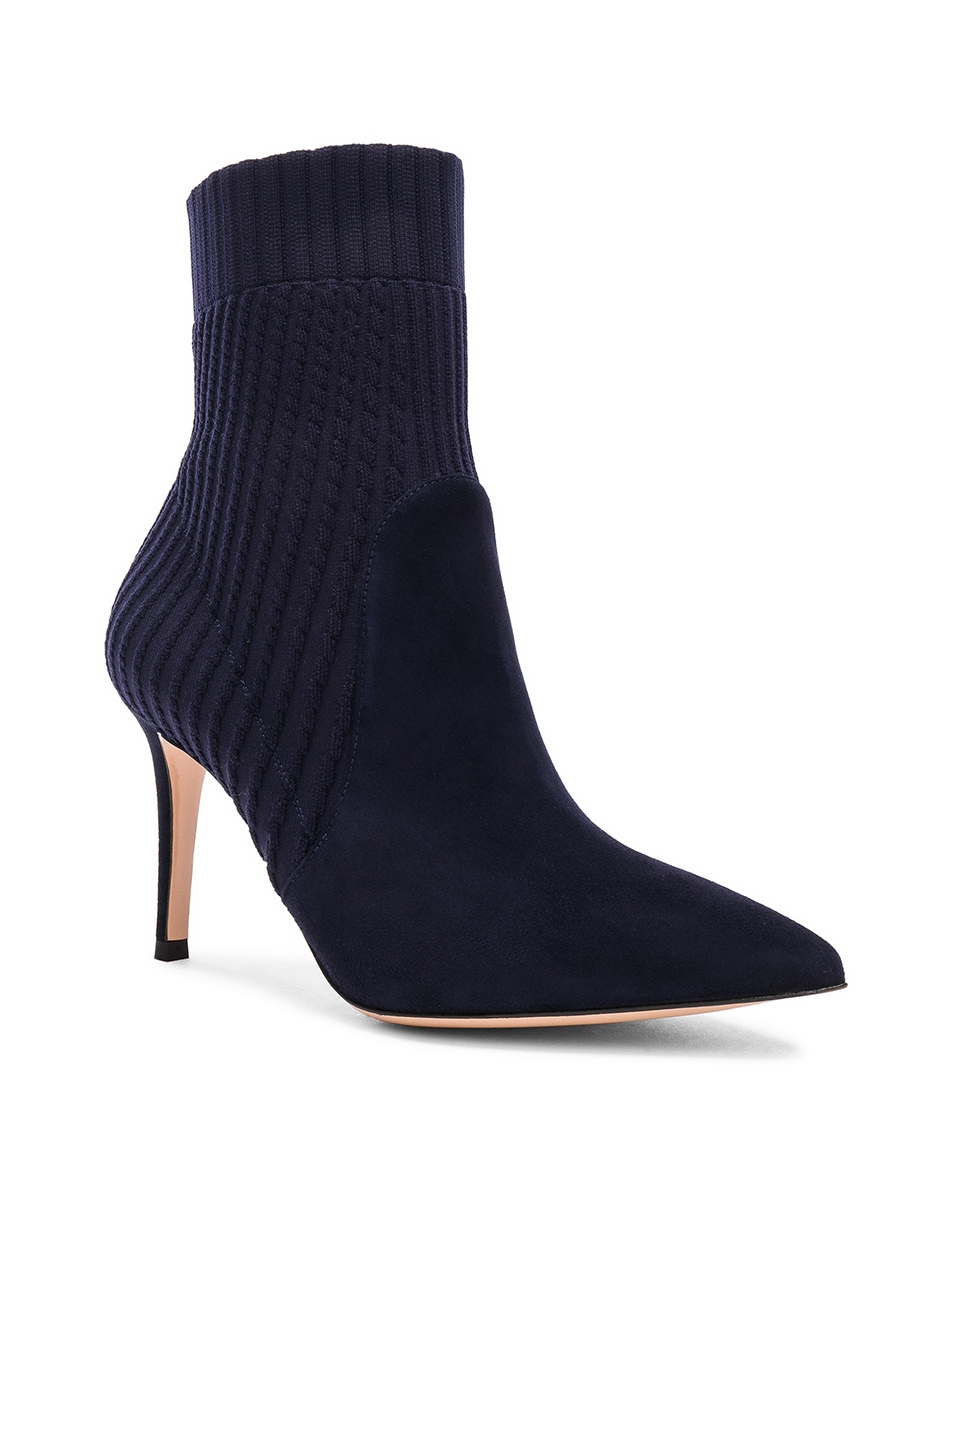 Image 2 of Gianvito Rossi Suede & Knit Katie Ankle Boots in Denim